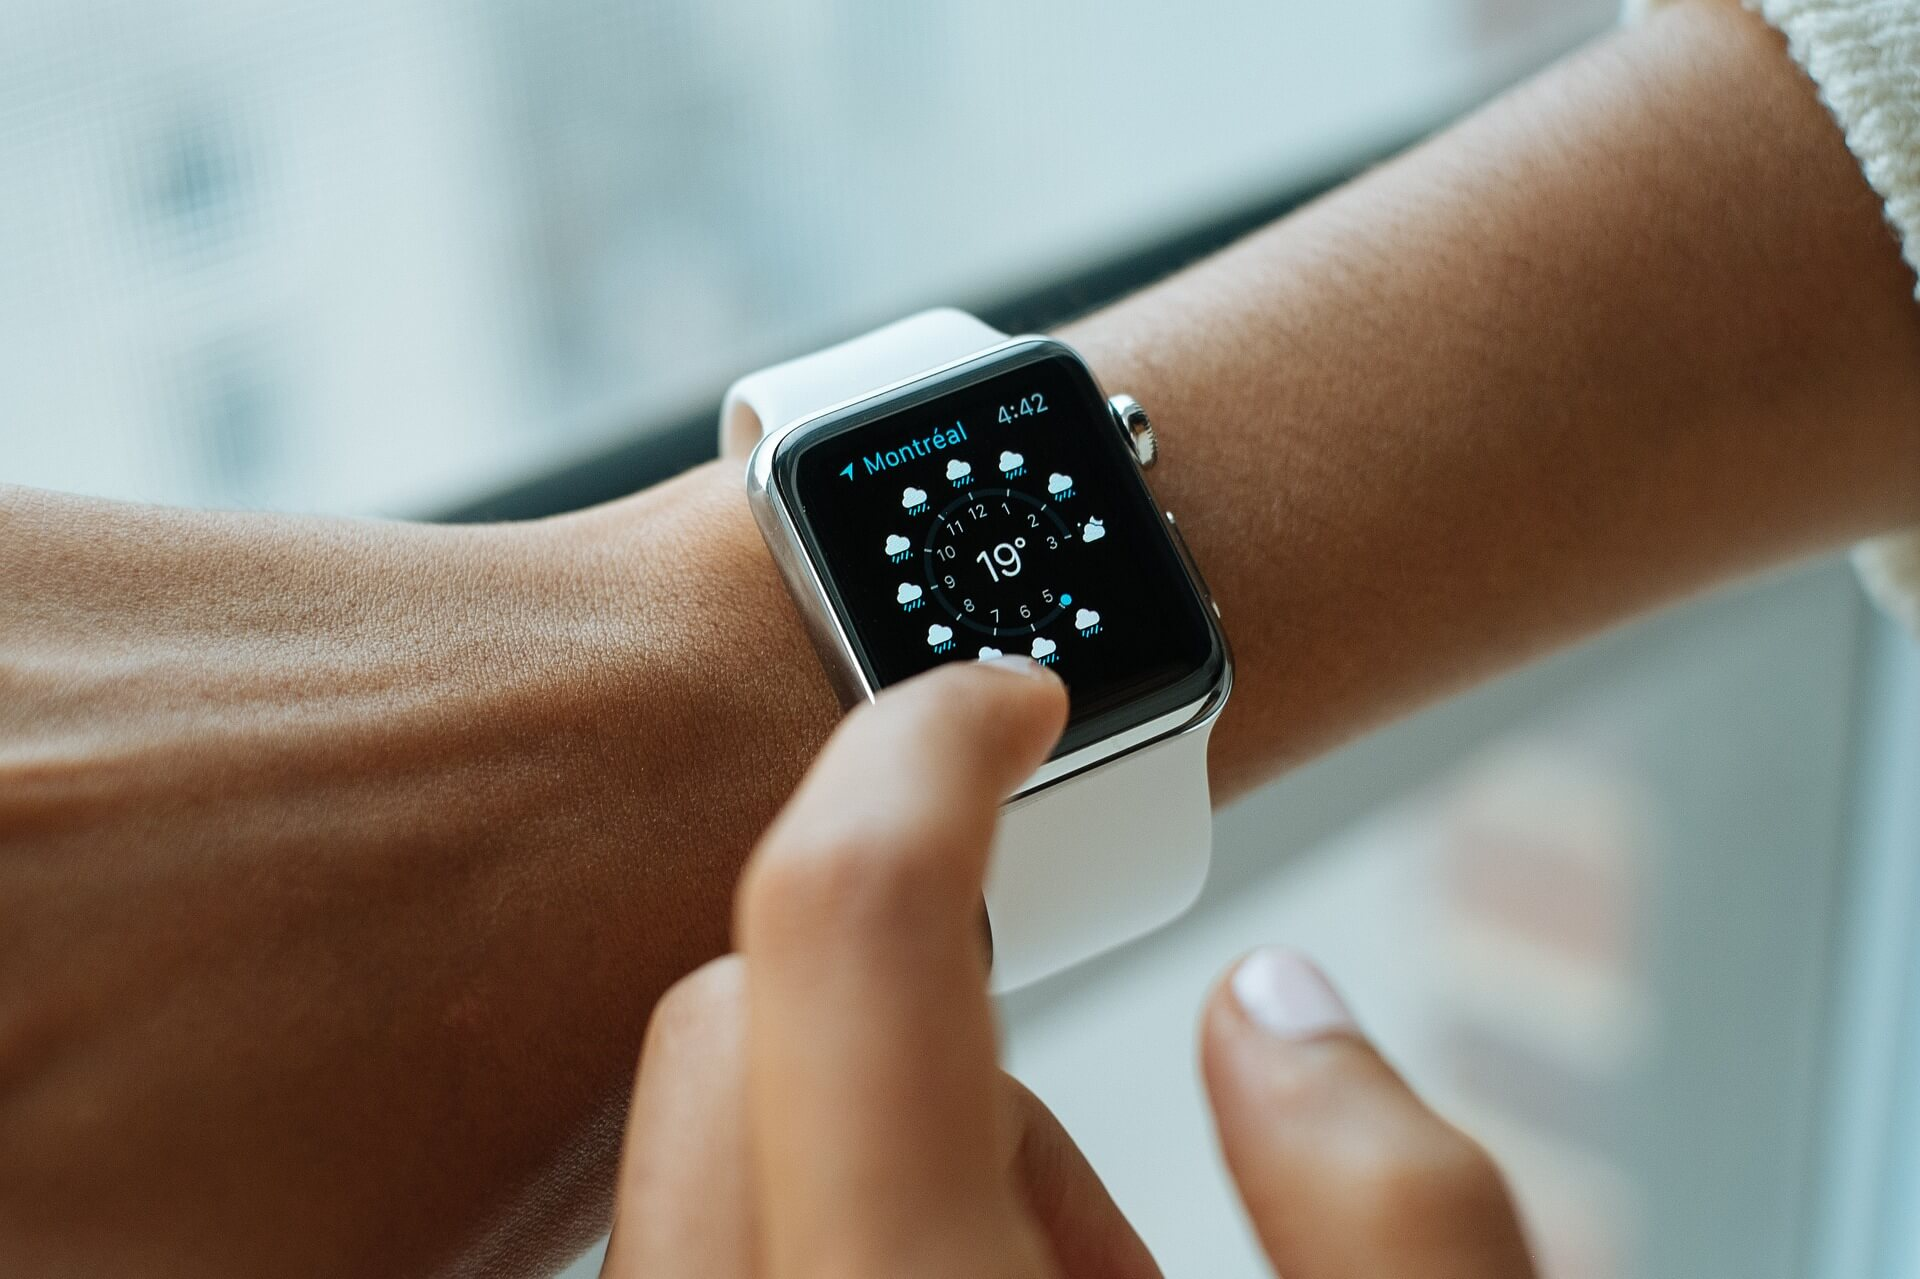 11-smartwatch-ui-iwatch